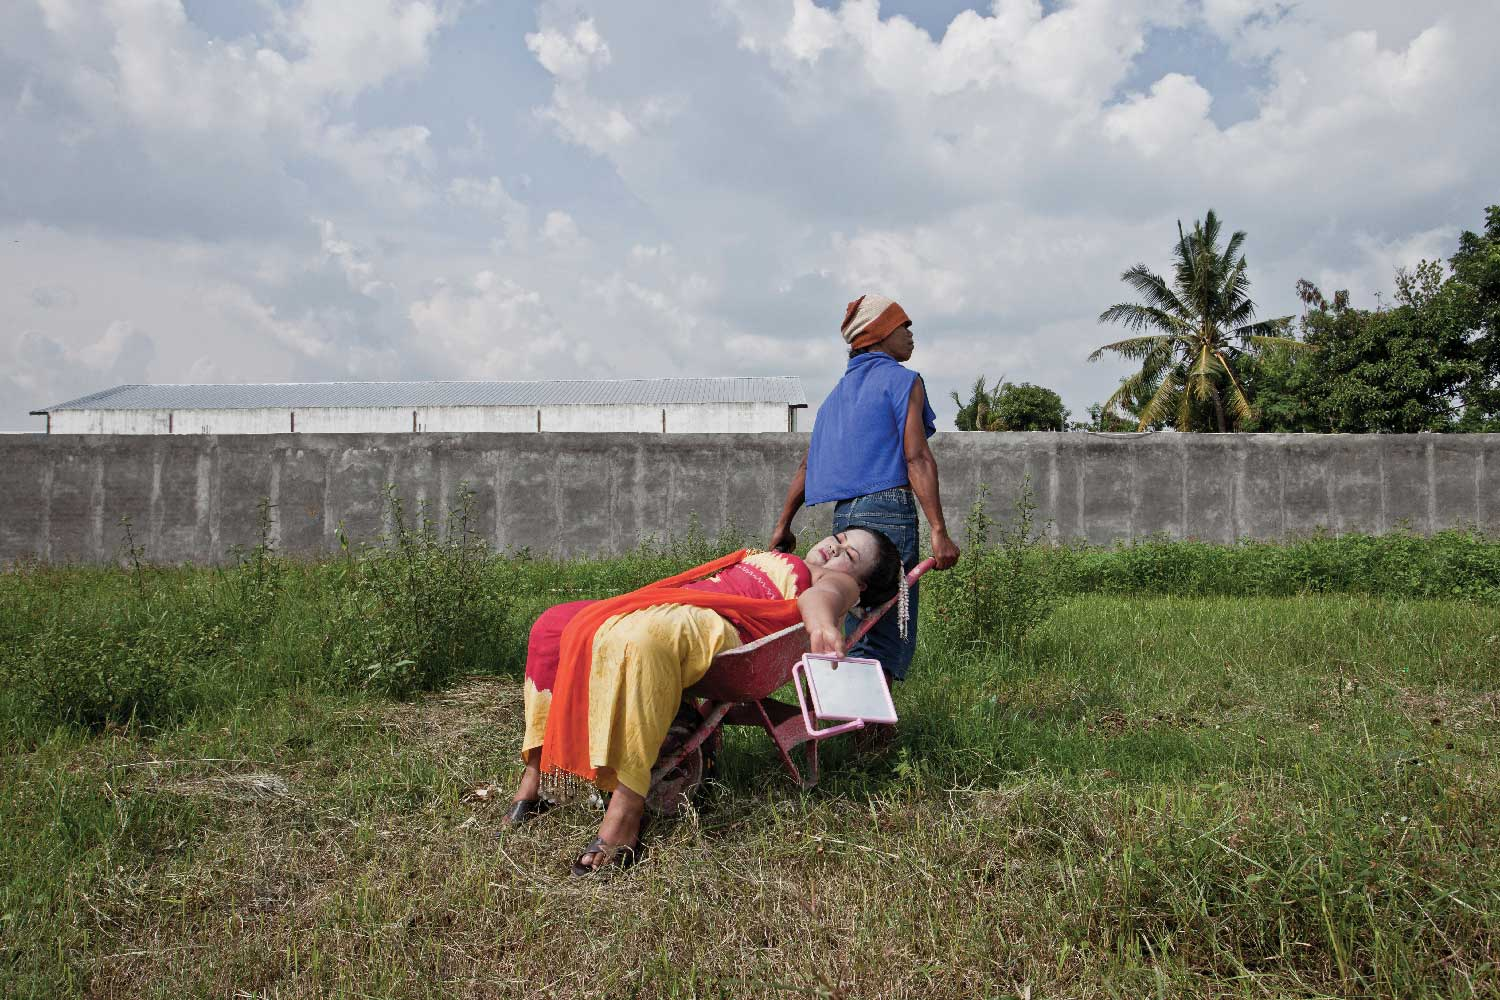 Helen Marshall and Risang Yuwono, FIELDS, 2013